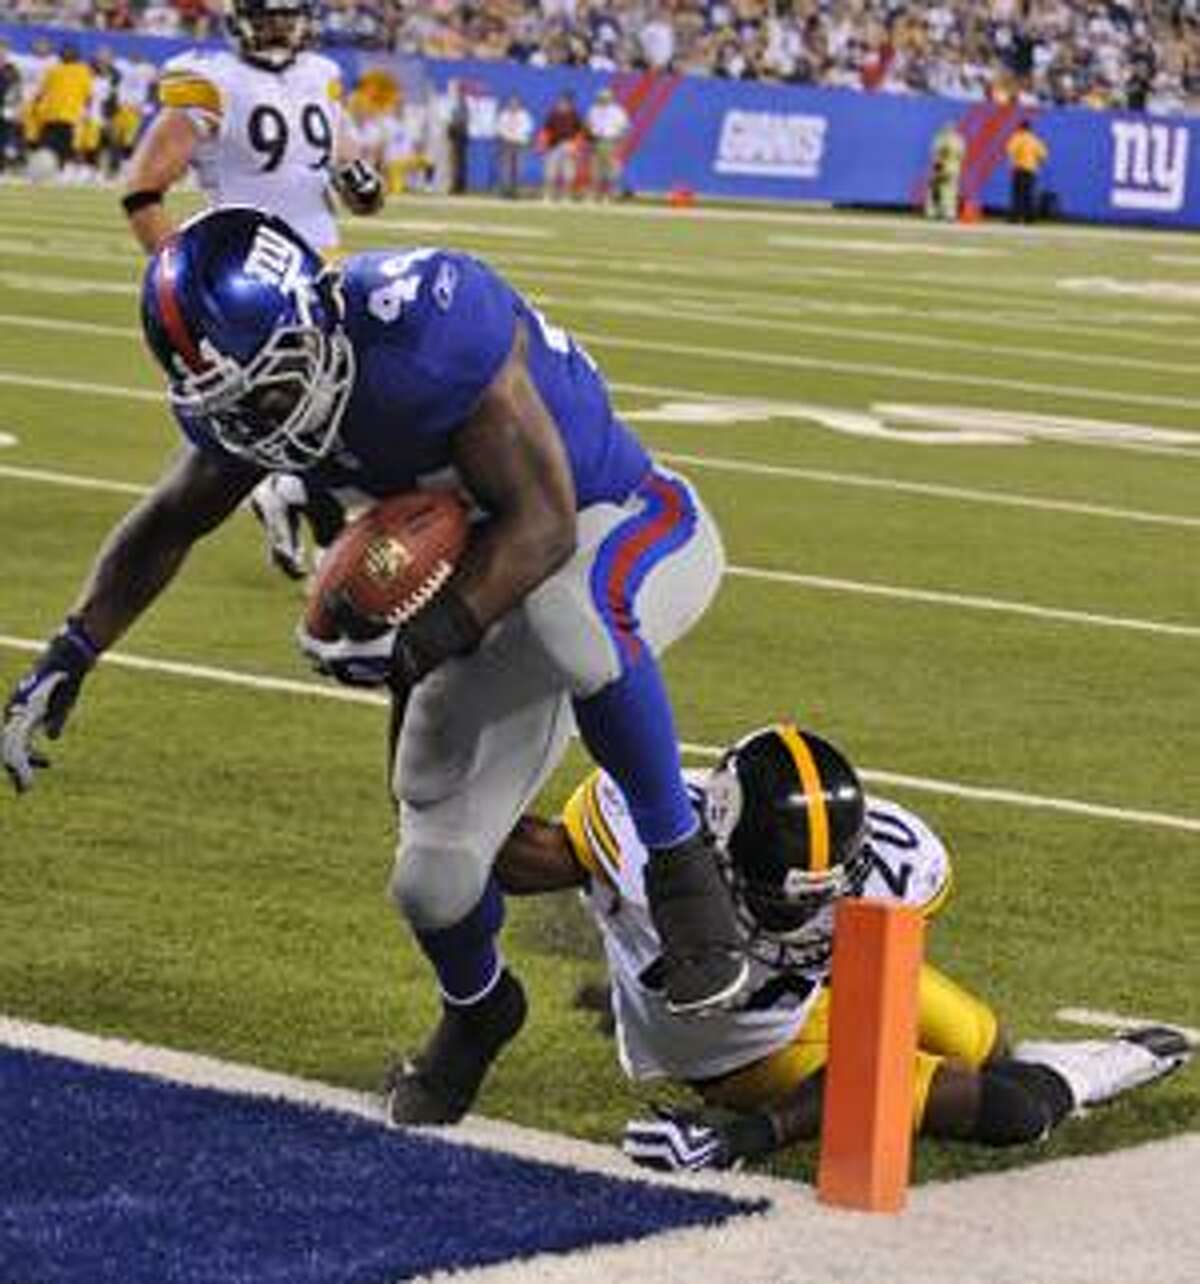 New York Giants running back Ahmad Bradshaw, right, breaks a tackle by Pittsburgh Steelers cornerback Bryant McFadden to score a touchdown during the second quarter of a preseason NFL football game at New Meadowlands Stadium in East Rutherford, N.J., Saturday, Aug. 21, 2010. (AP Photo/Bill Kostroun)